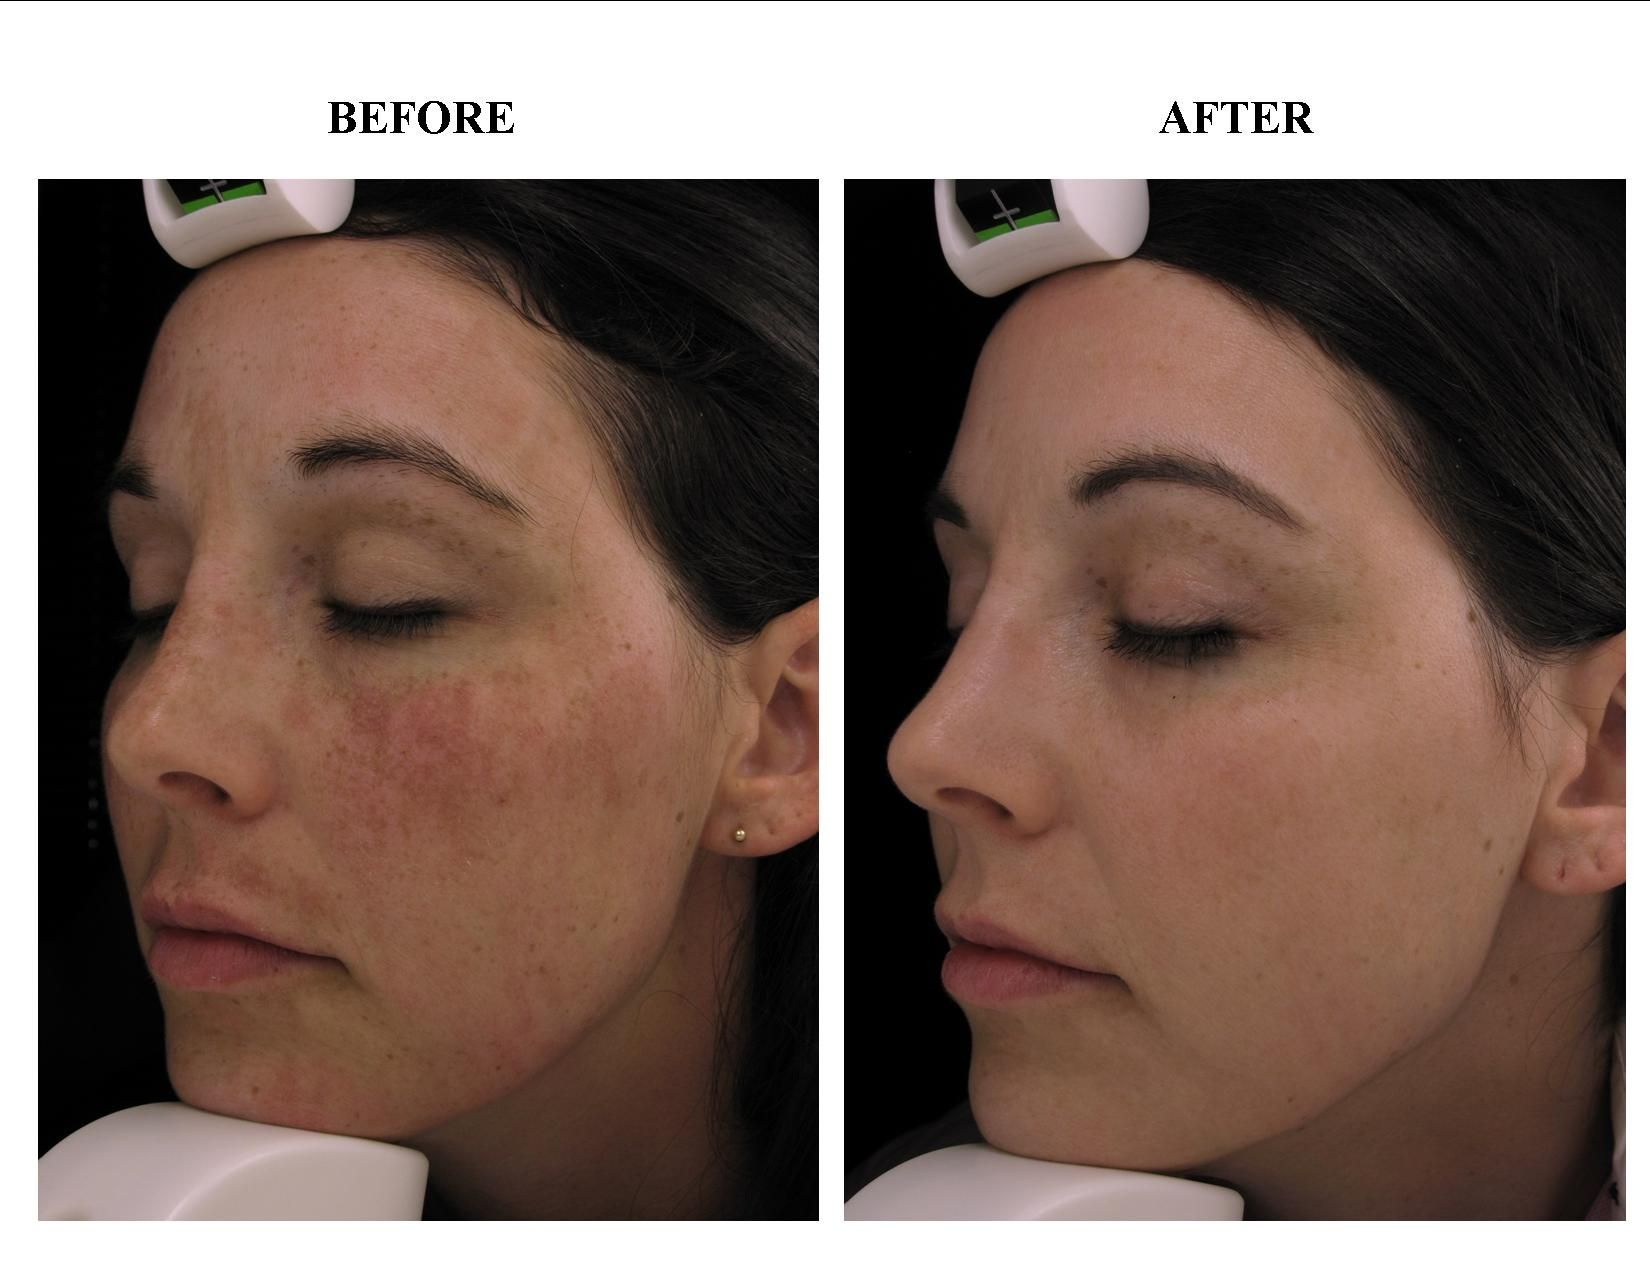 Patient Staff Member Before And After Treatment For Melasma Www Tote Bag Kulit Voila Callysta Dark Brown Themedicalspacom